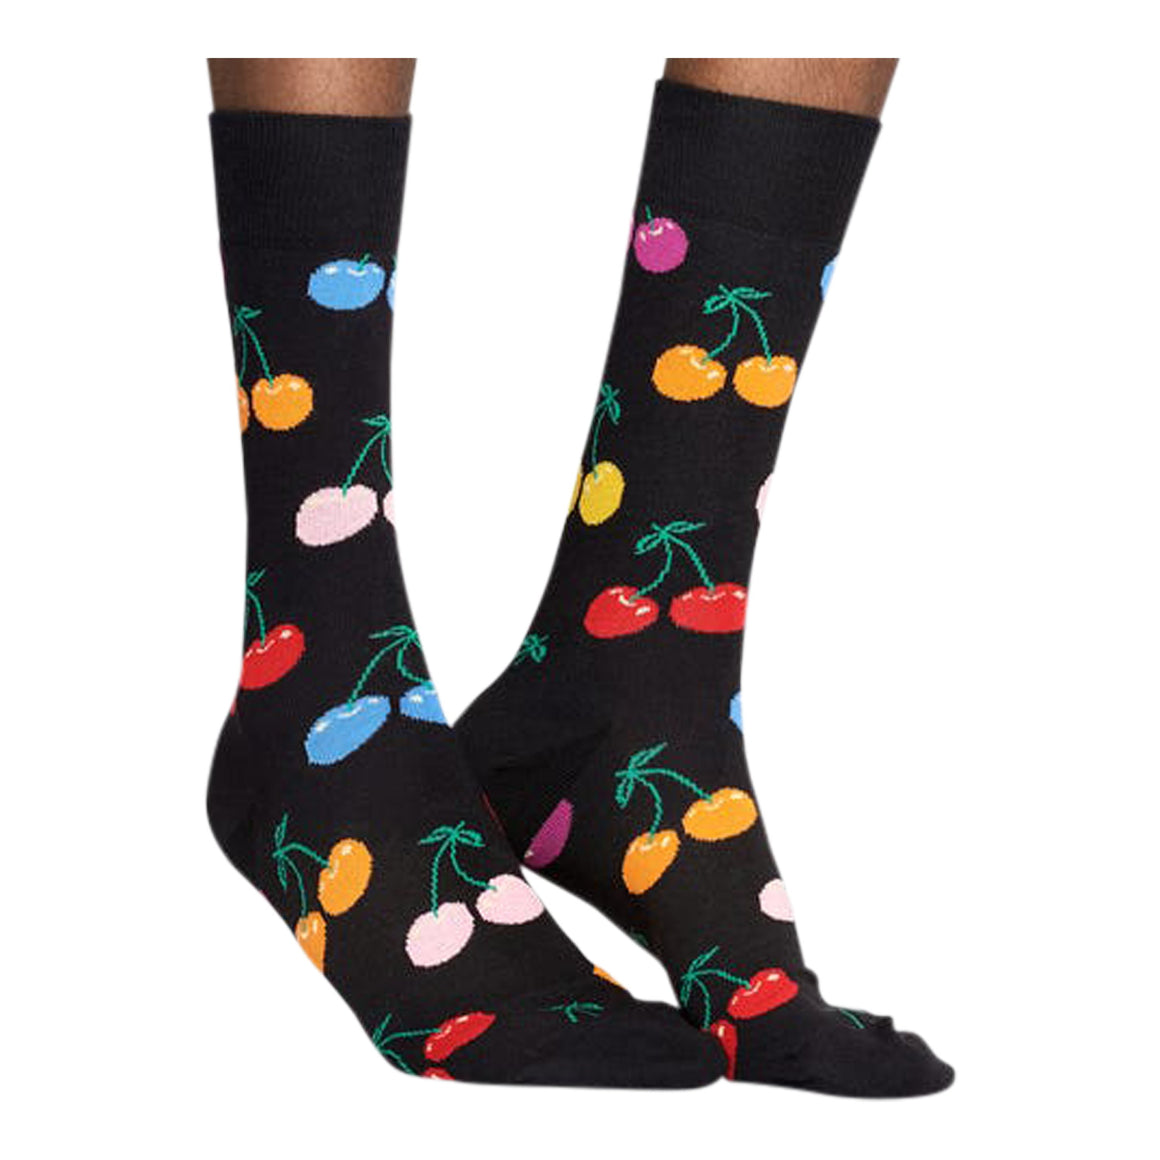 Cherry Socks for Men in Black